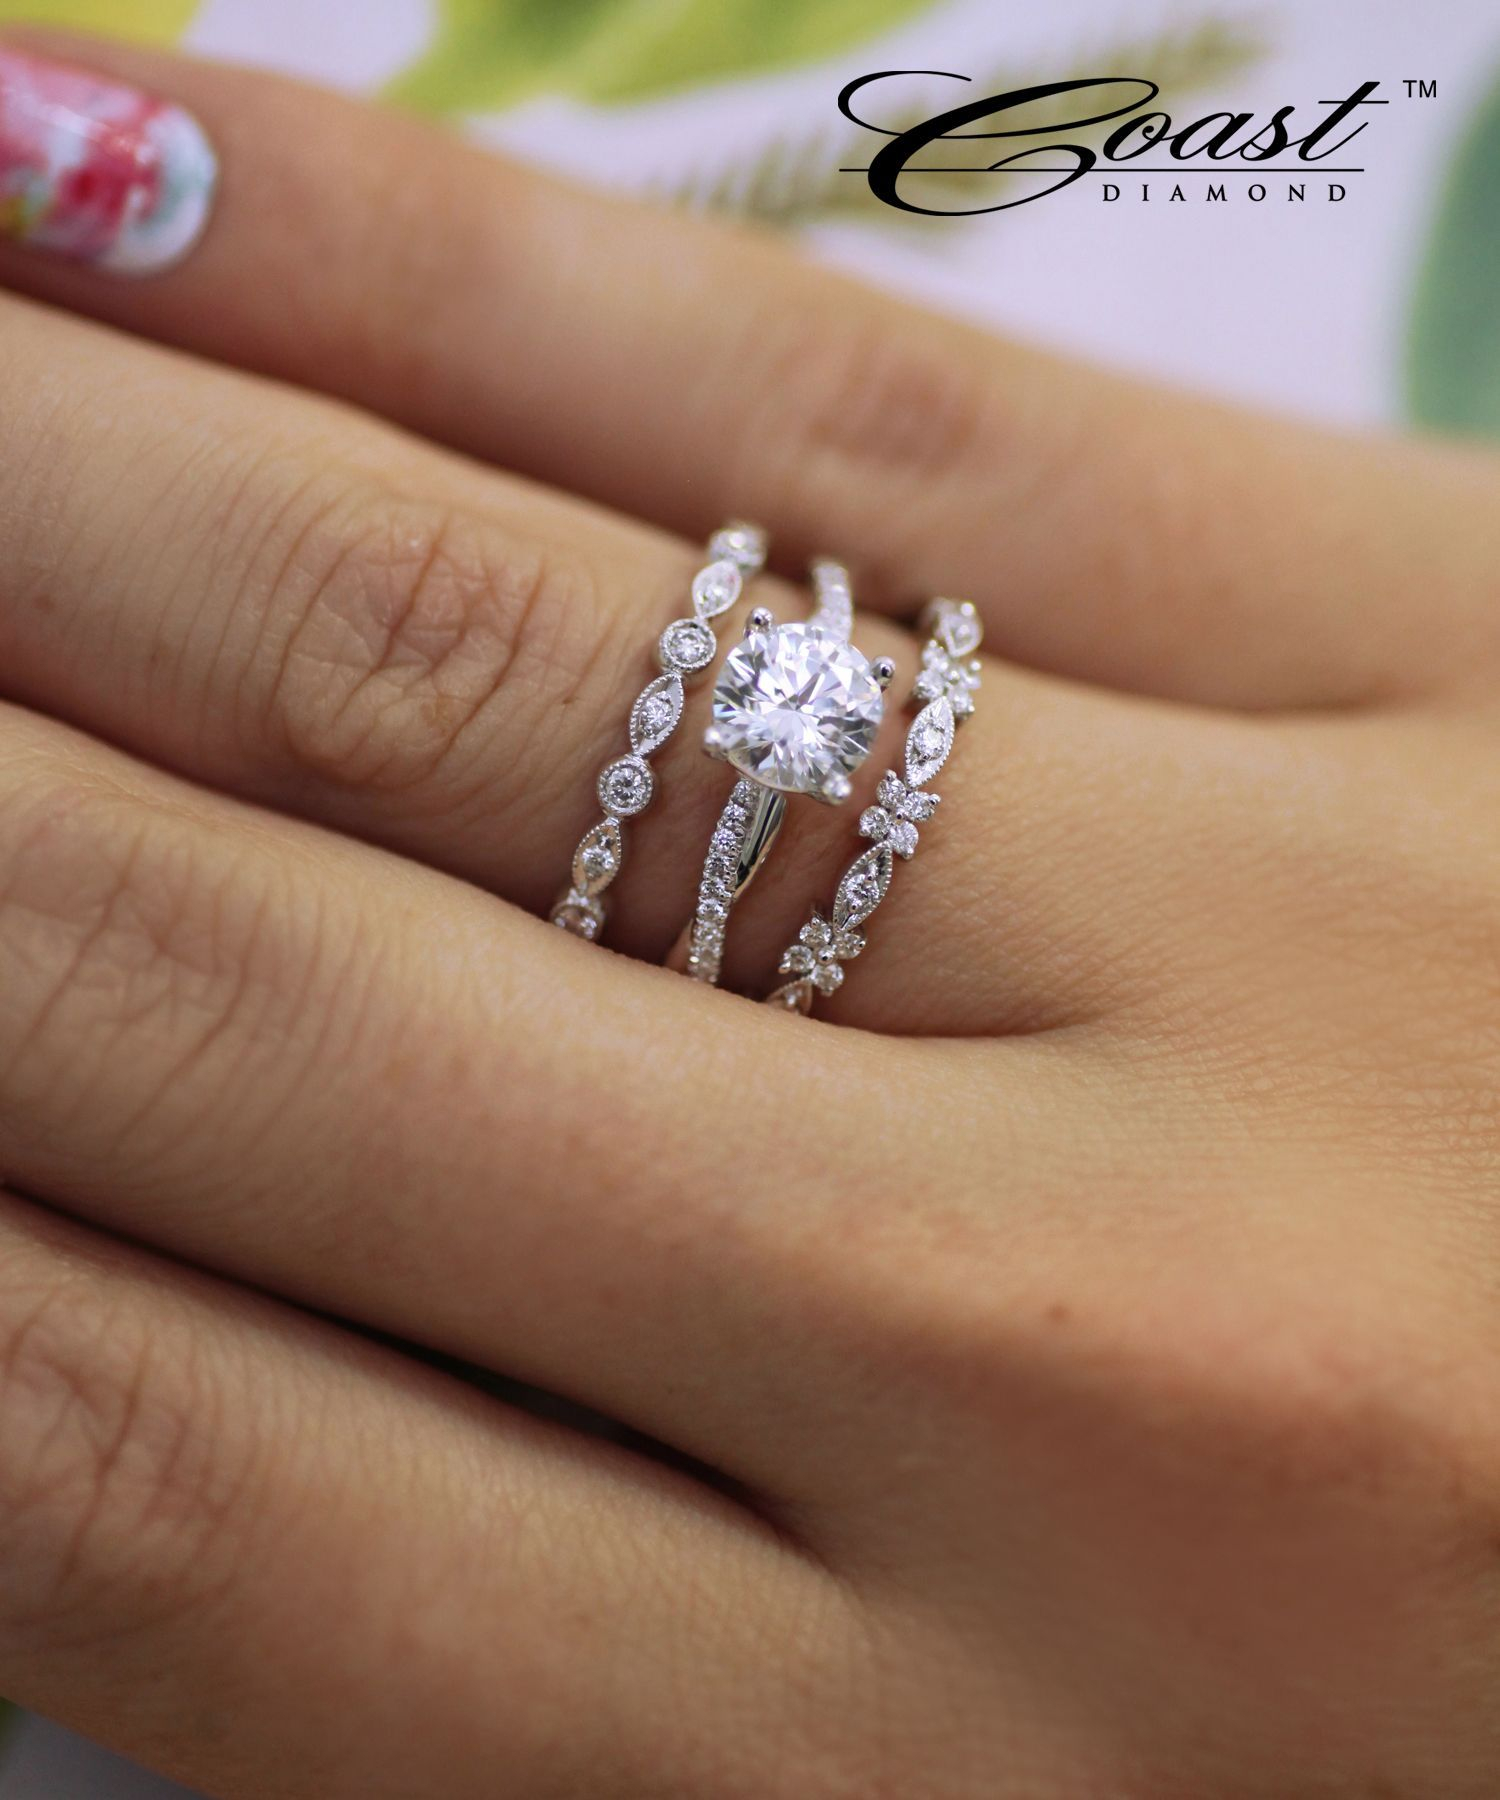 A Fashion Band Featuring Brilliant Round Diamonds Set In With Regard To Most Popular Marquise And Round Diamond Alternating Anniversary Bands In Rose Gold (View 6 of 25)